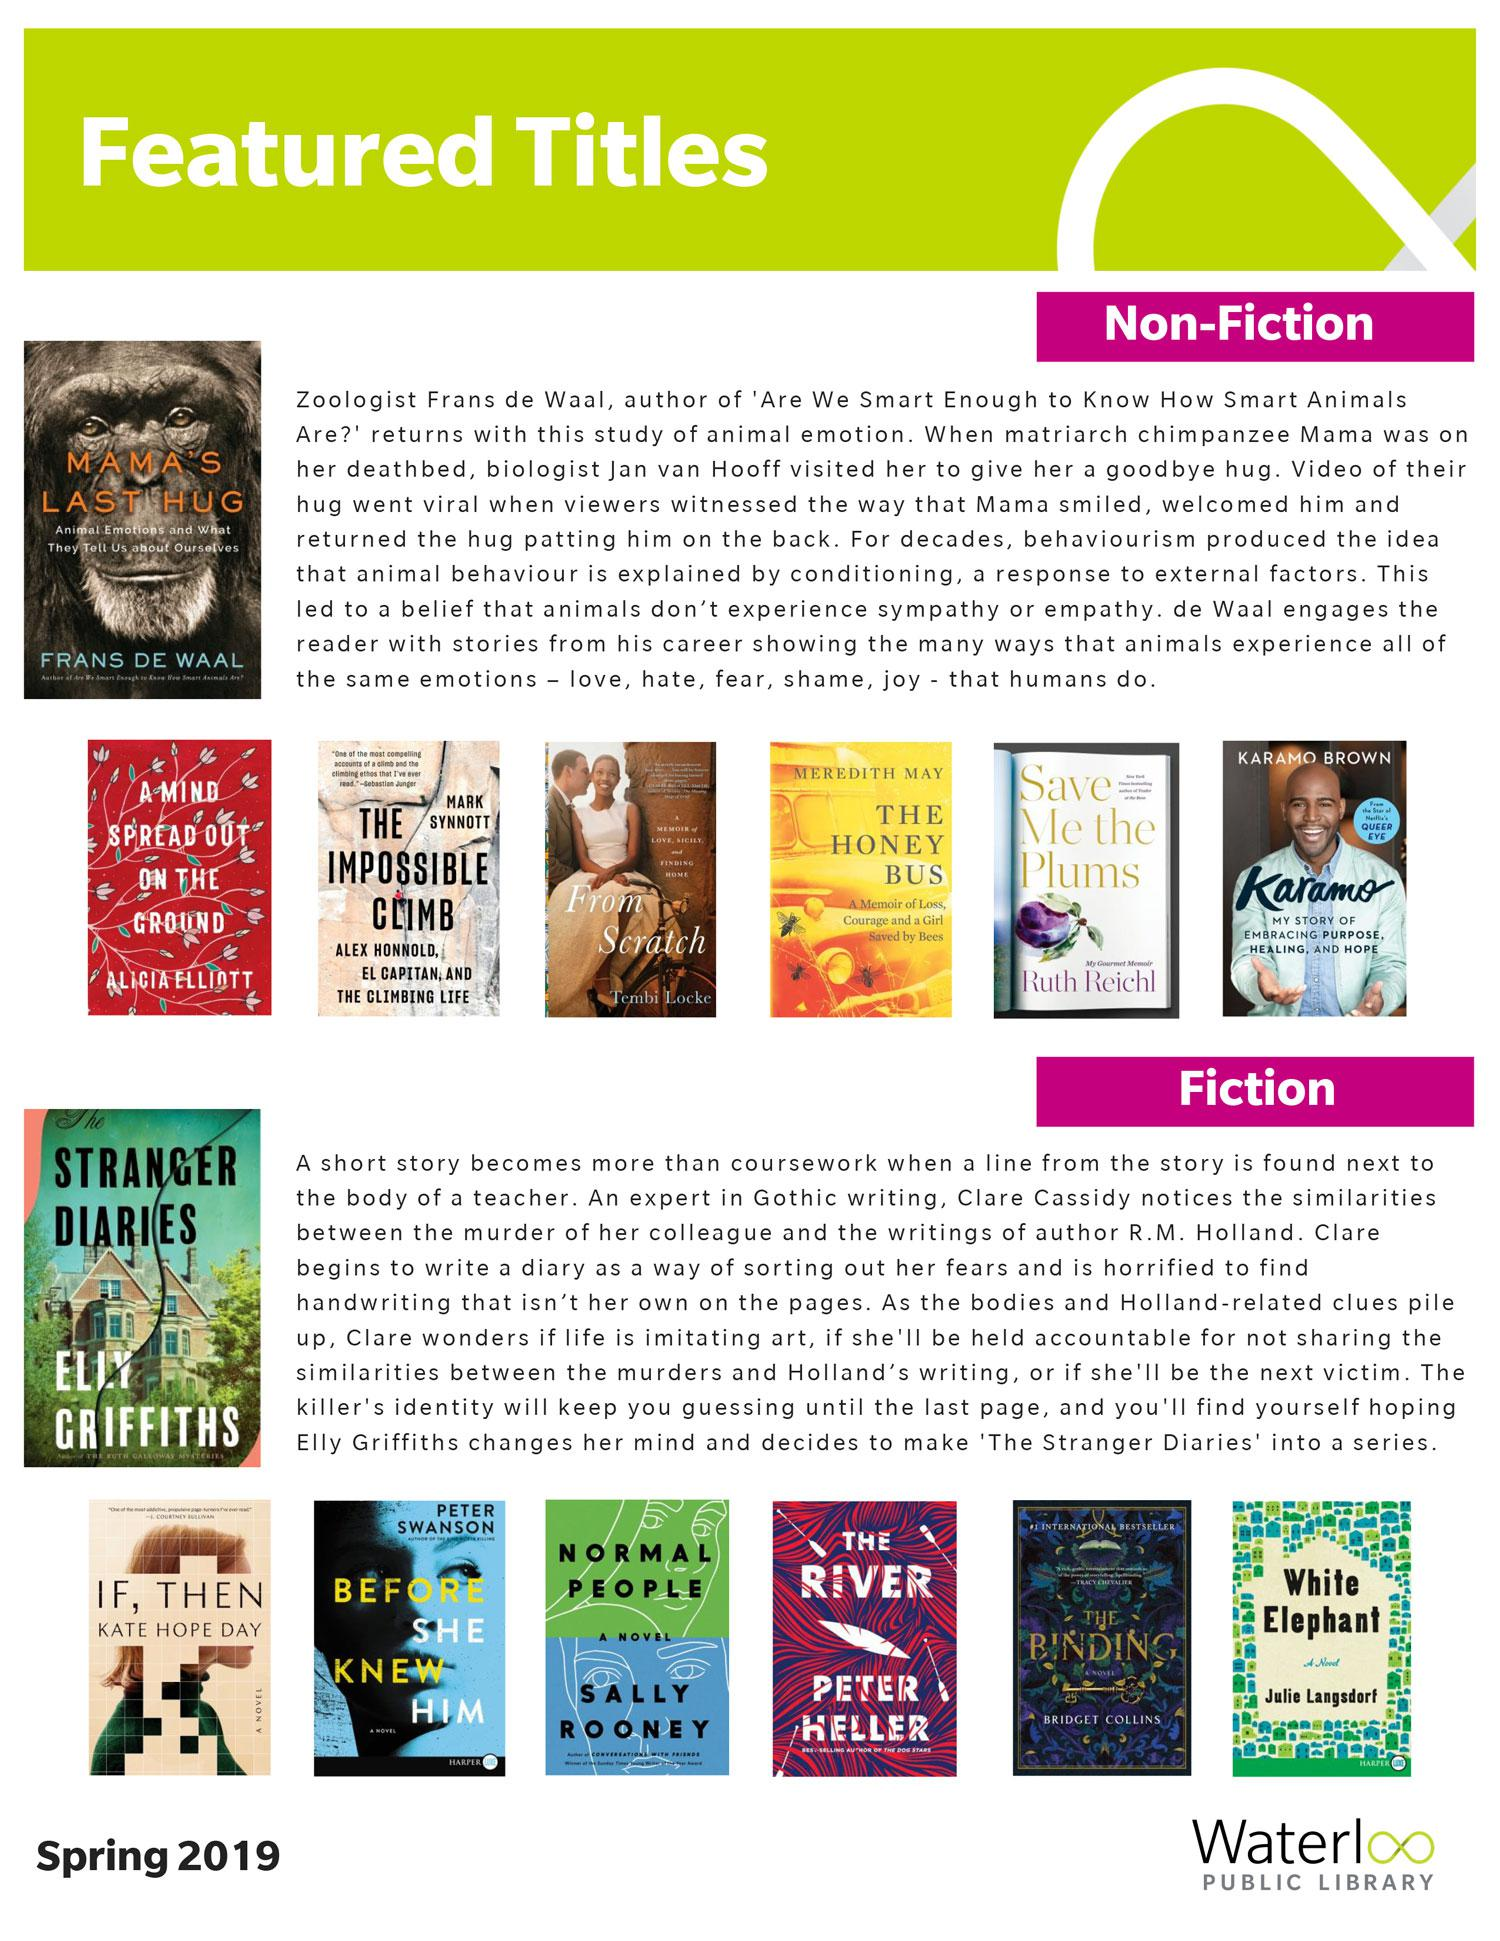 Featured Titles List - Spring 2019